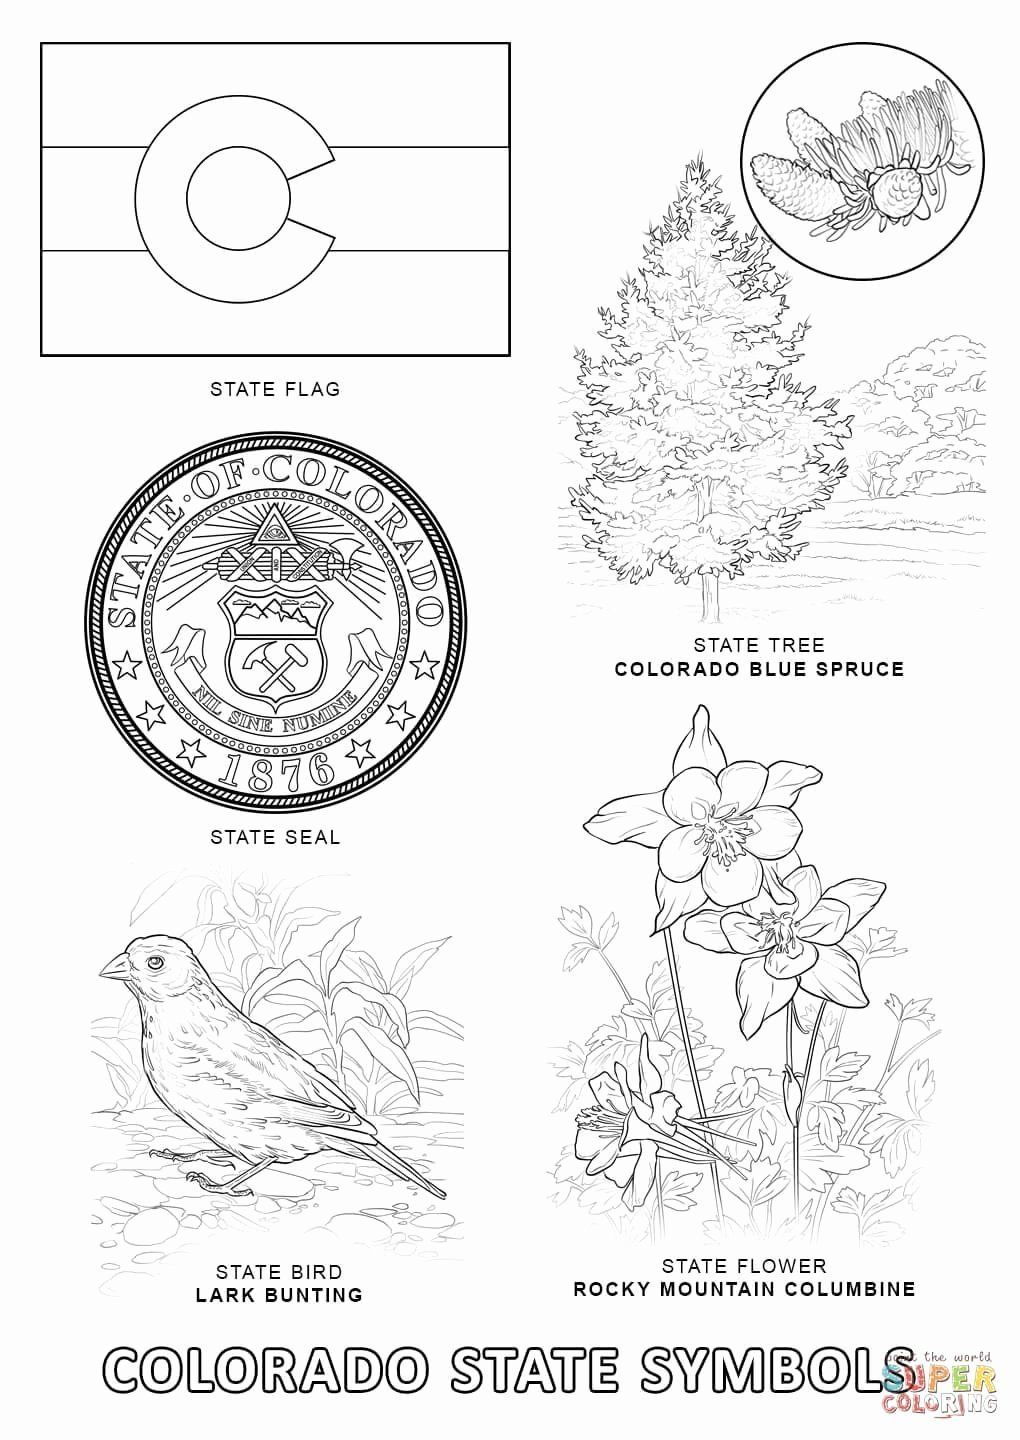 Coloring Flowers Science Project Best Of Colorado State Symbols Super Coloring Flowers Science Project Coloring Pages Personalized Coloring Book